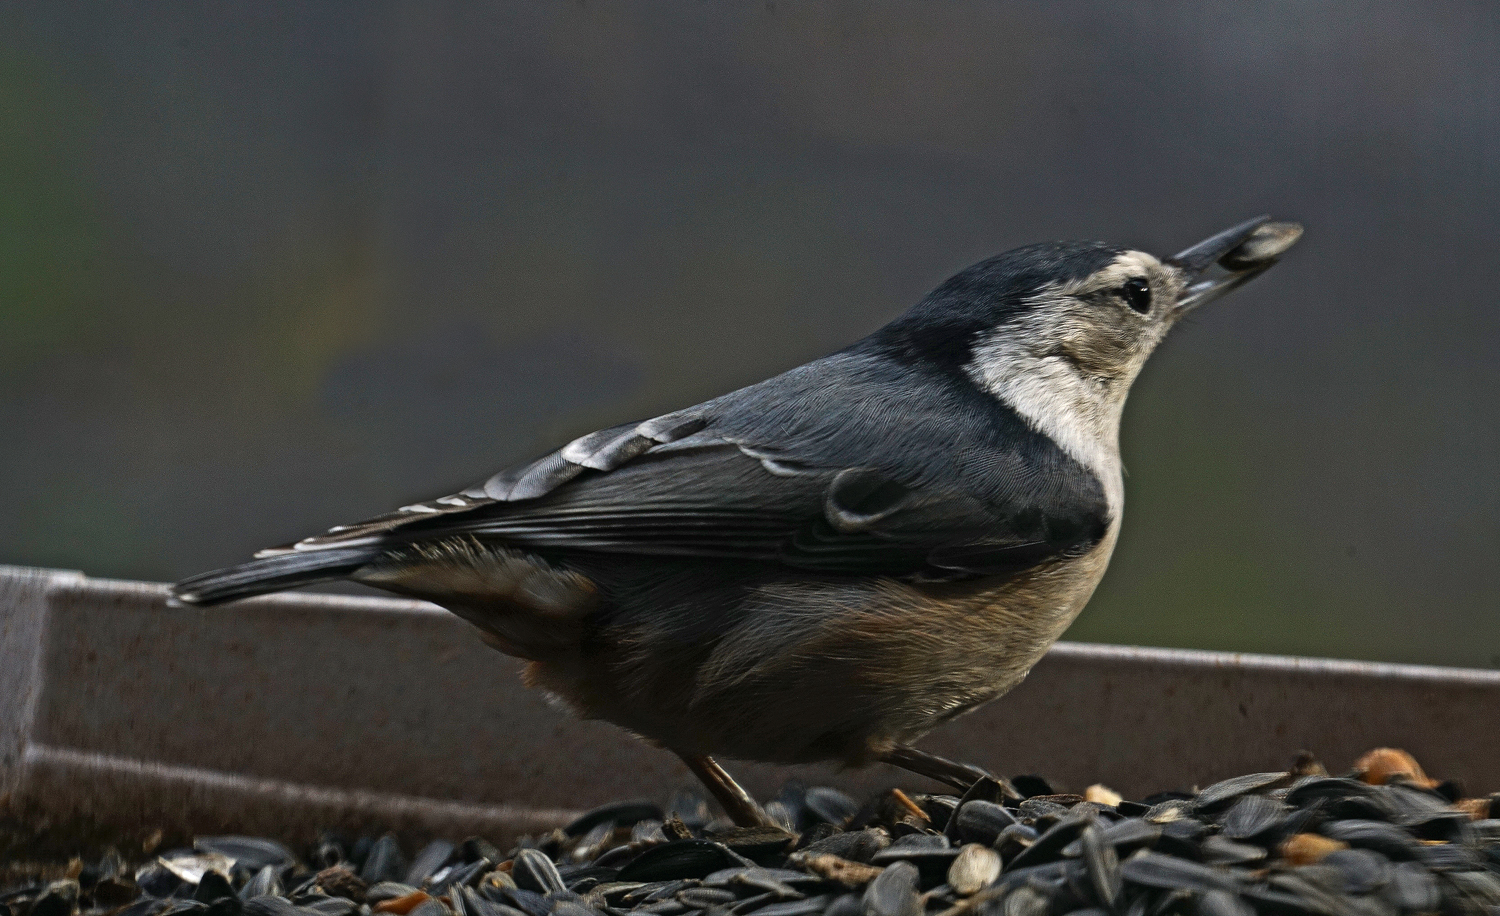 nuthatch author sava gregory and verena thanks